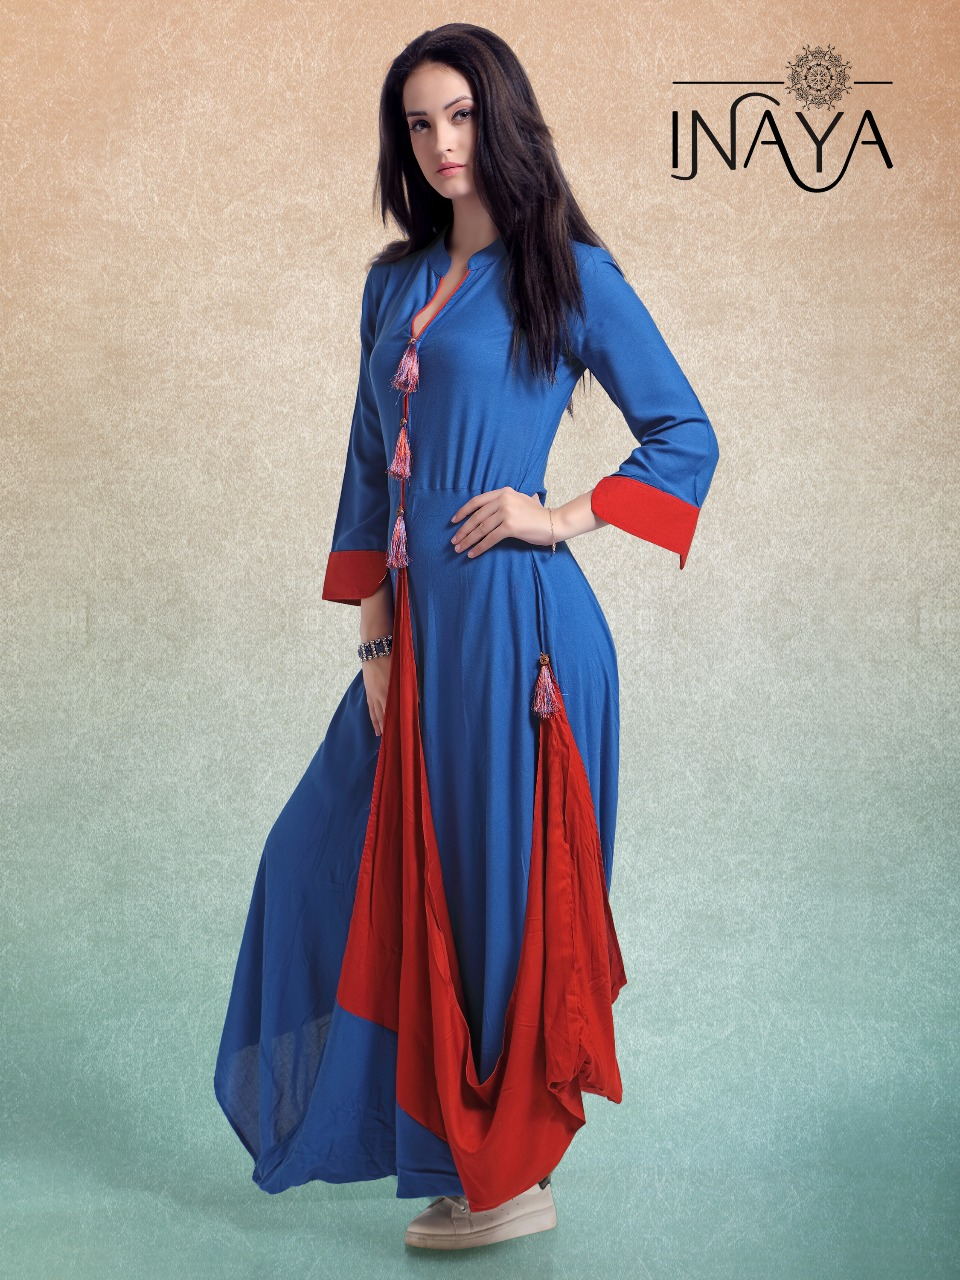 Ready Made Clothing : Libas studio inaya stylish cowl k full style gown ready